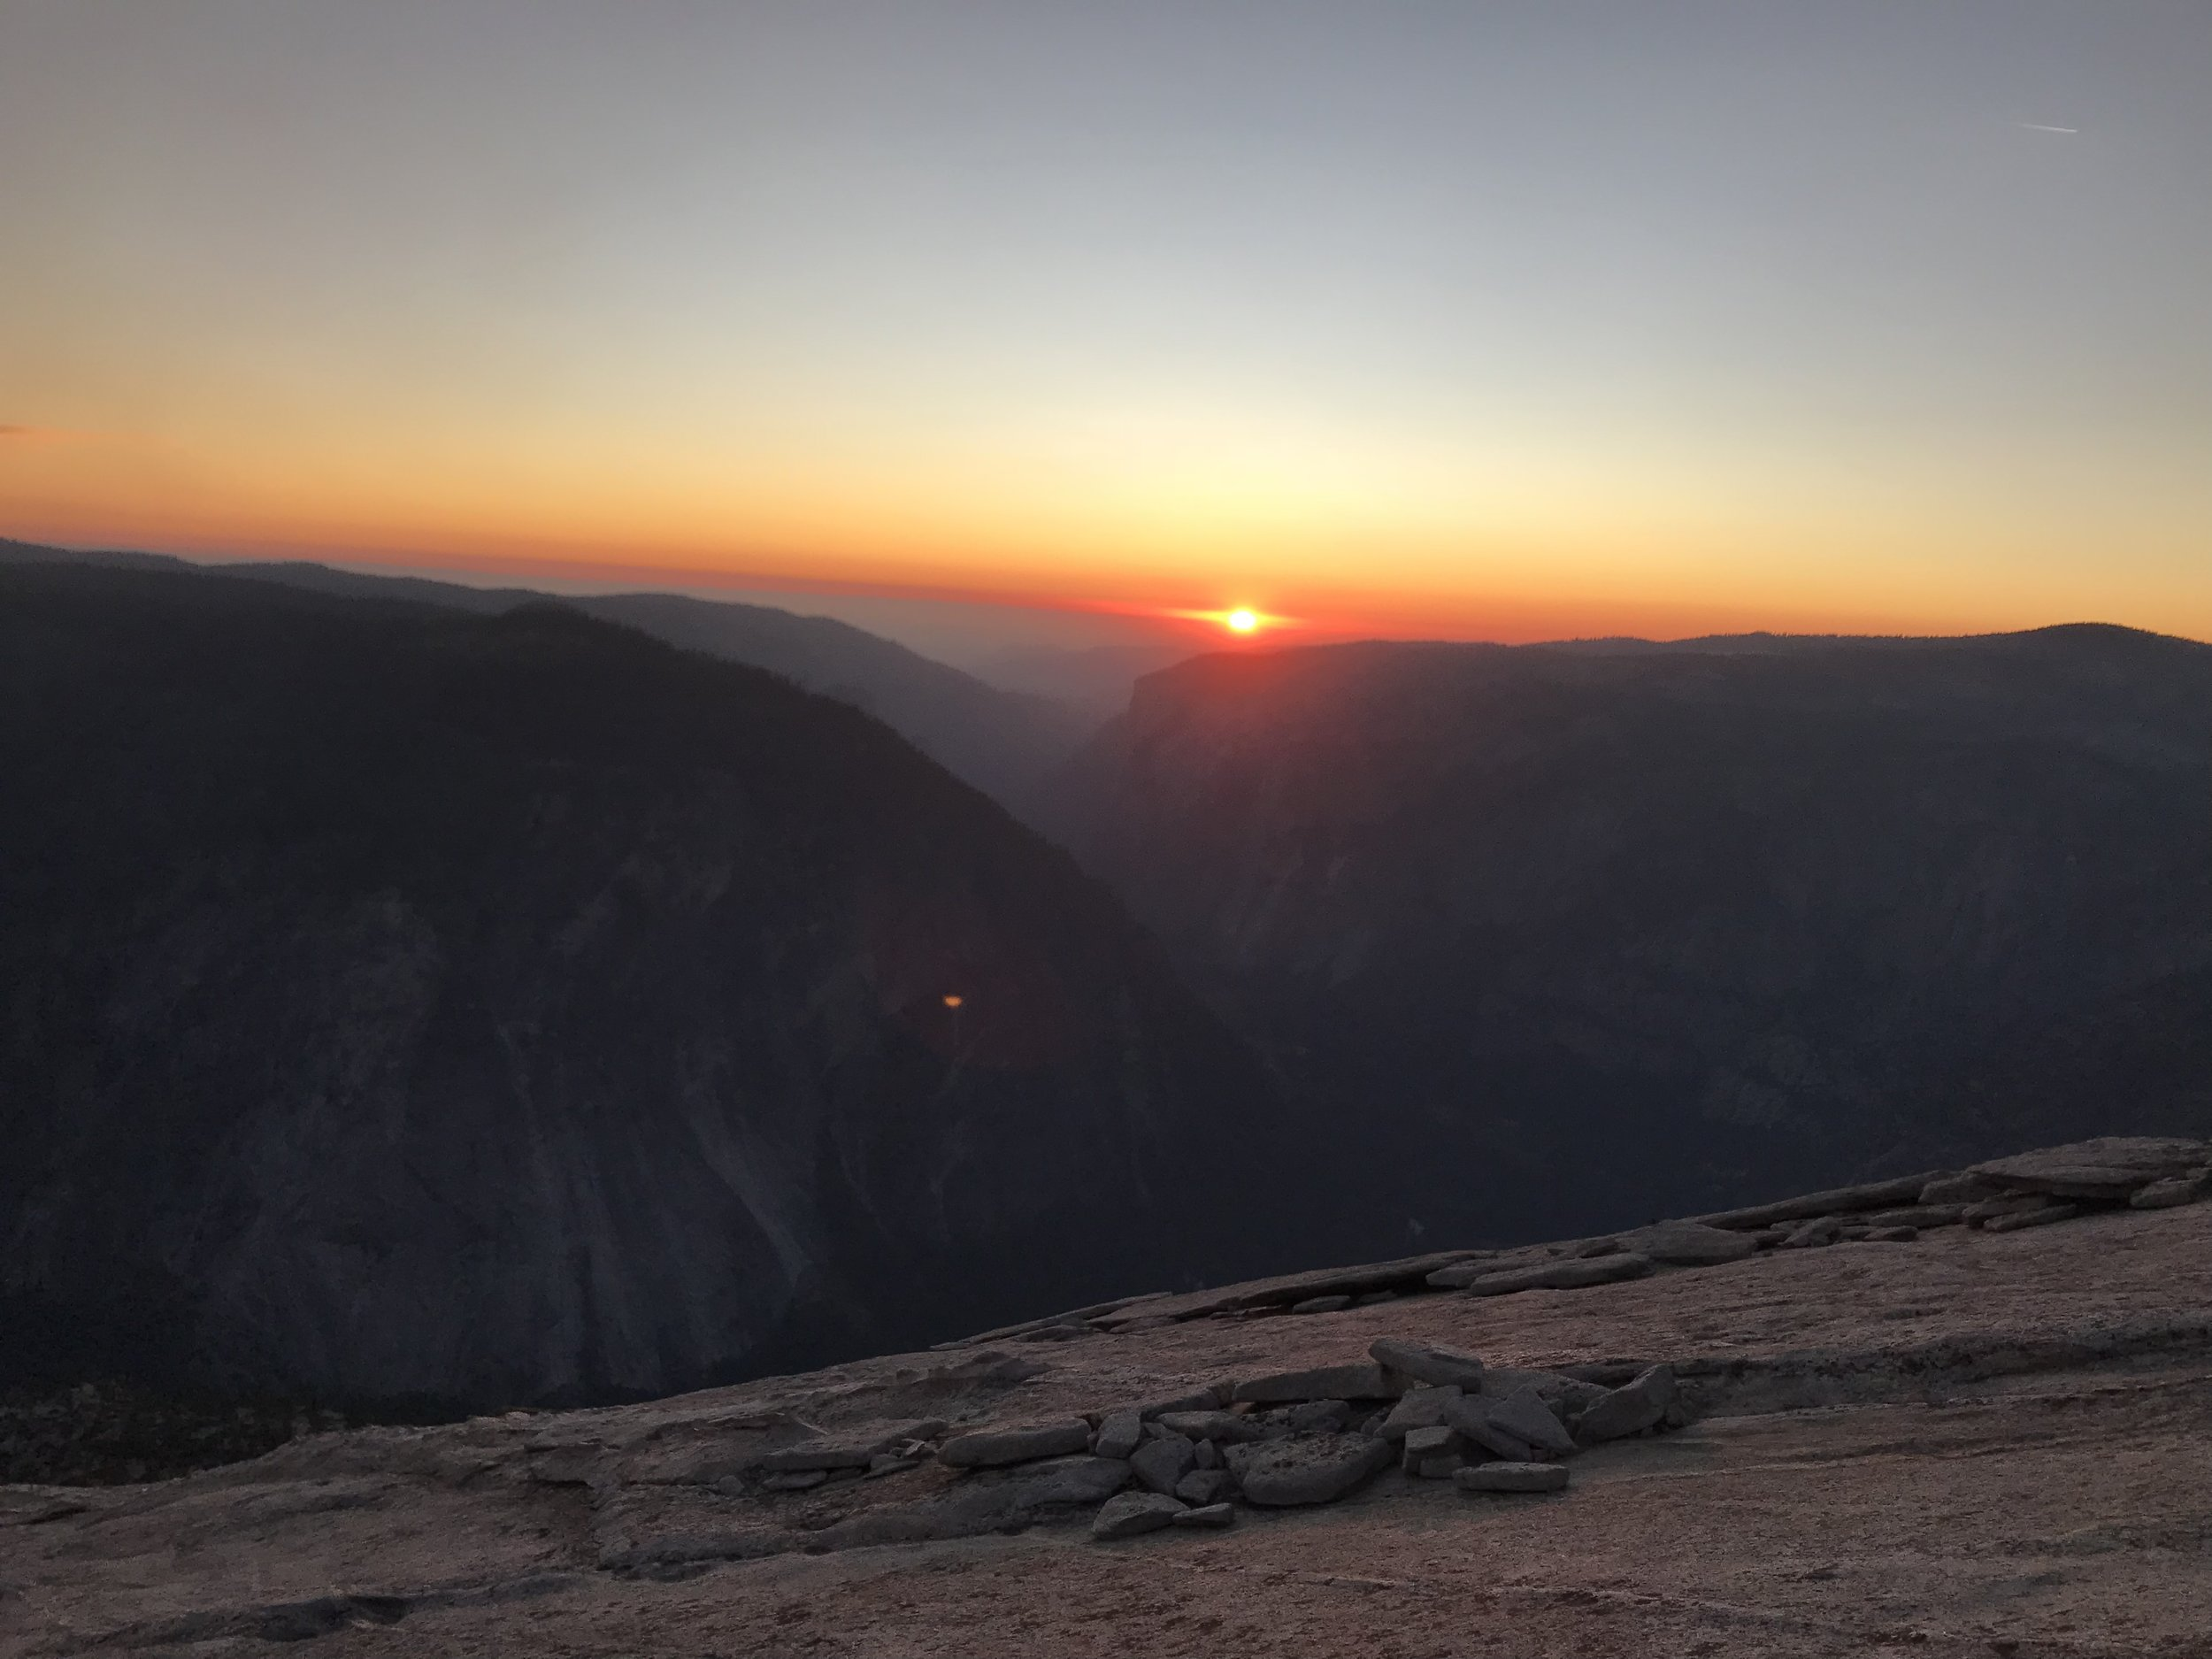 Made it to the Half Dome summit just in time for sun set.